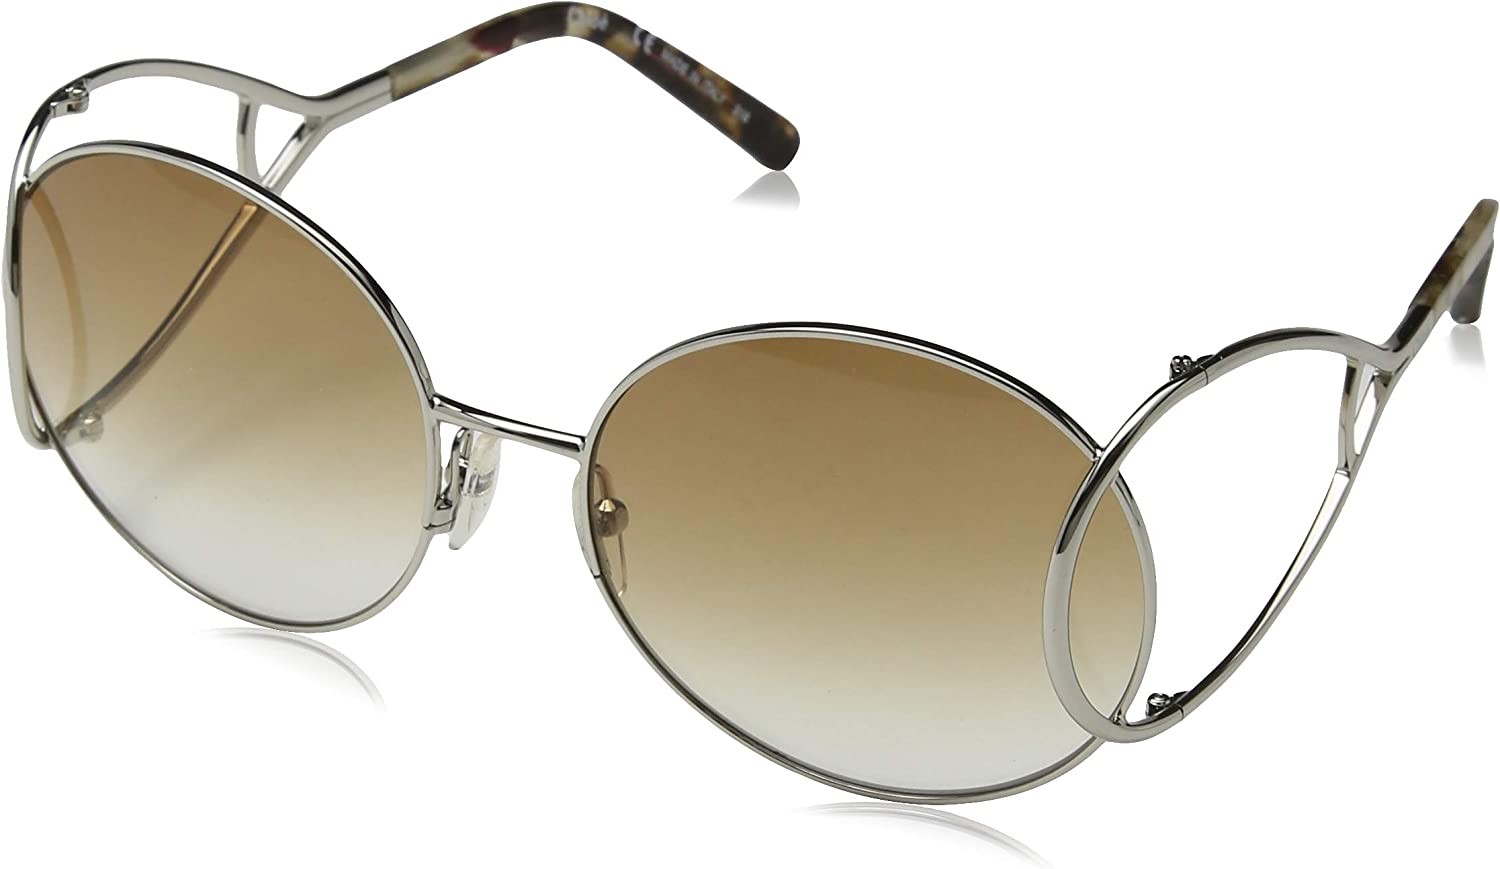 Chloe Jackson Round Racket Temple Sunglasses in Silver Brown Marble CE124 S 043 60 60 Brown Gradient